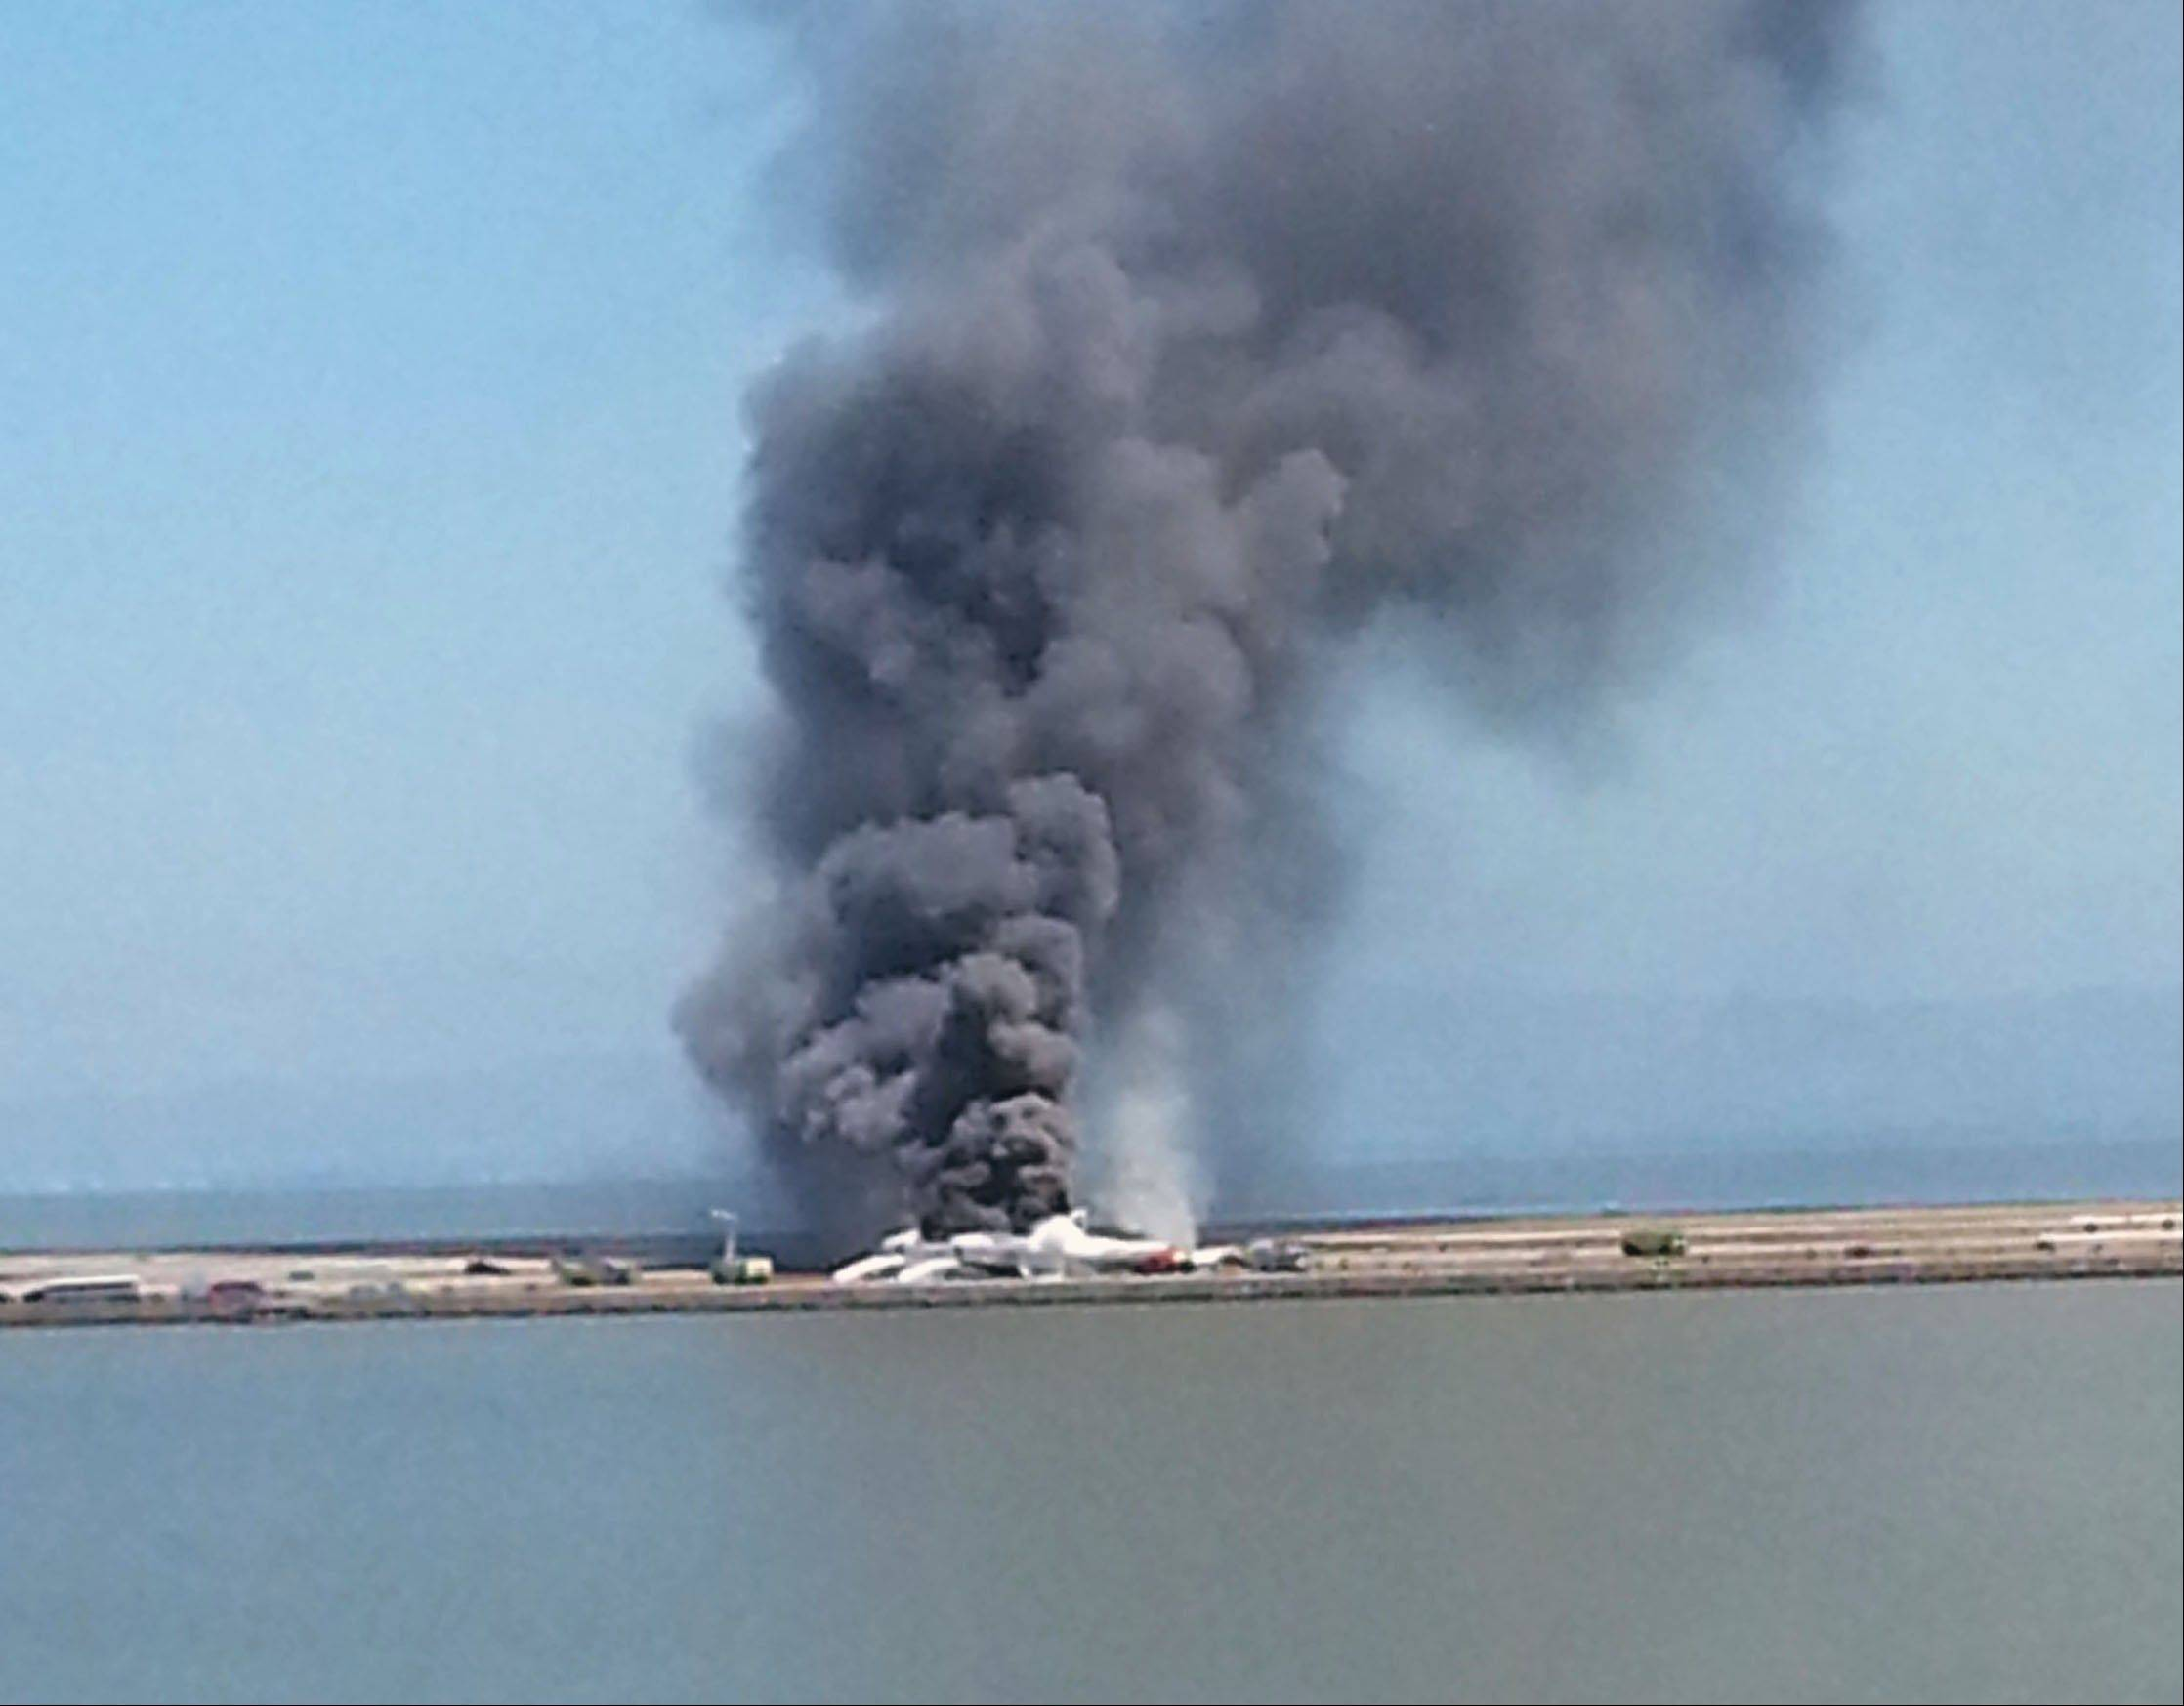 This photo provided by Antonette Edwards shows what a federal aviation official says was an Asiana Airlines flight crashing while landing at San Francisco airport on Saturday, July 6, 2013. It was not immediately known whether there were any injuries.